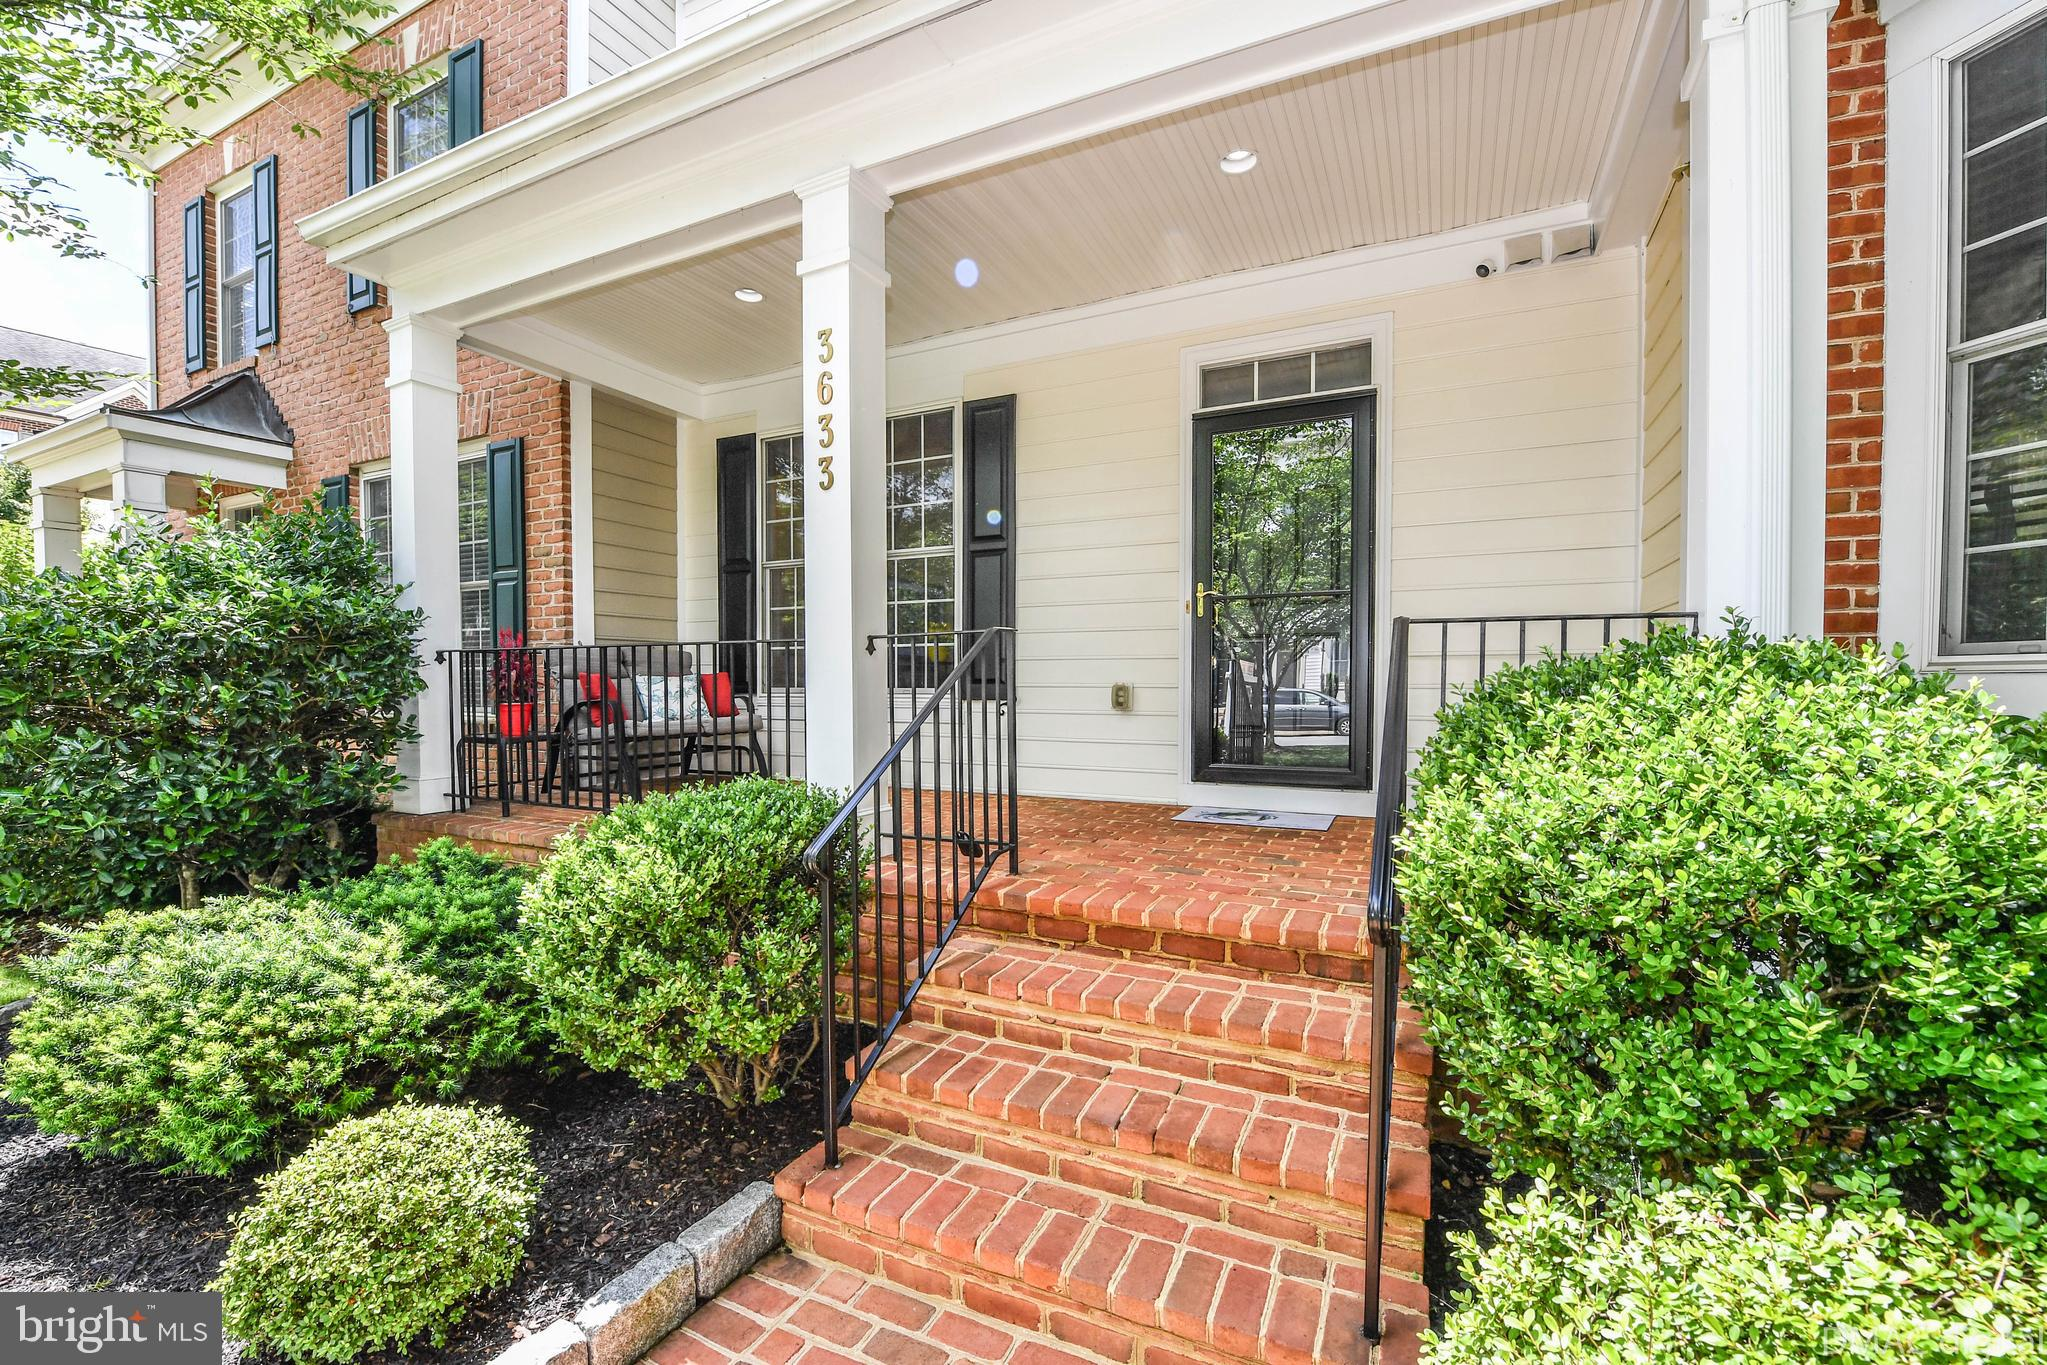 Beautifully maintained Urbana townhome with 2 car garage and comfortable front porch overlooking wid